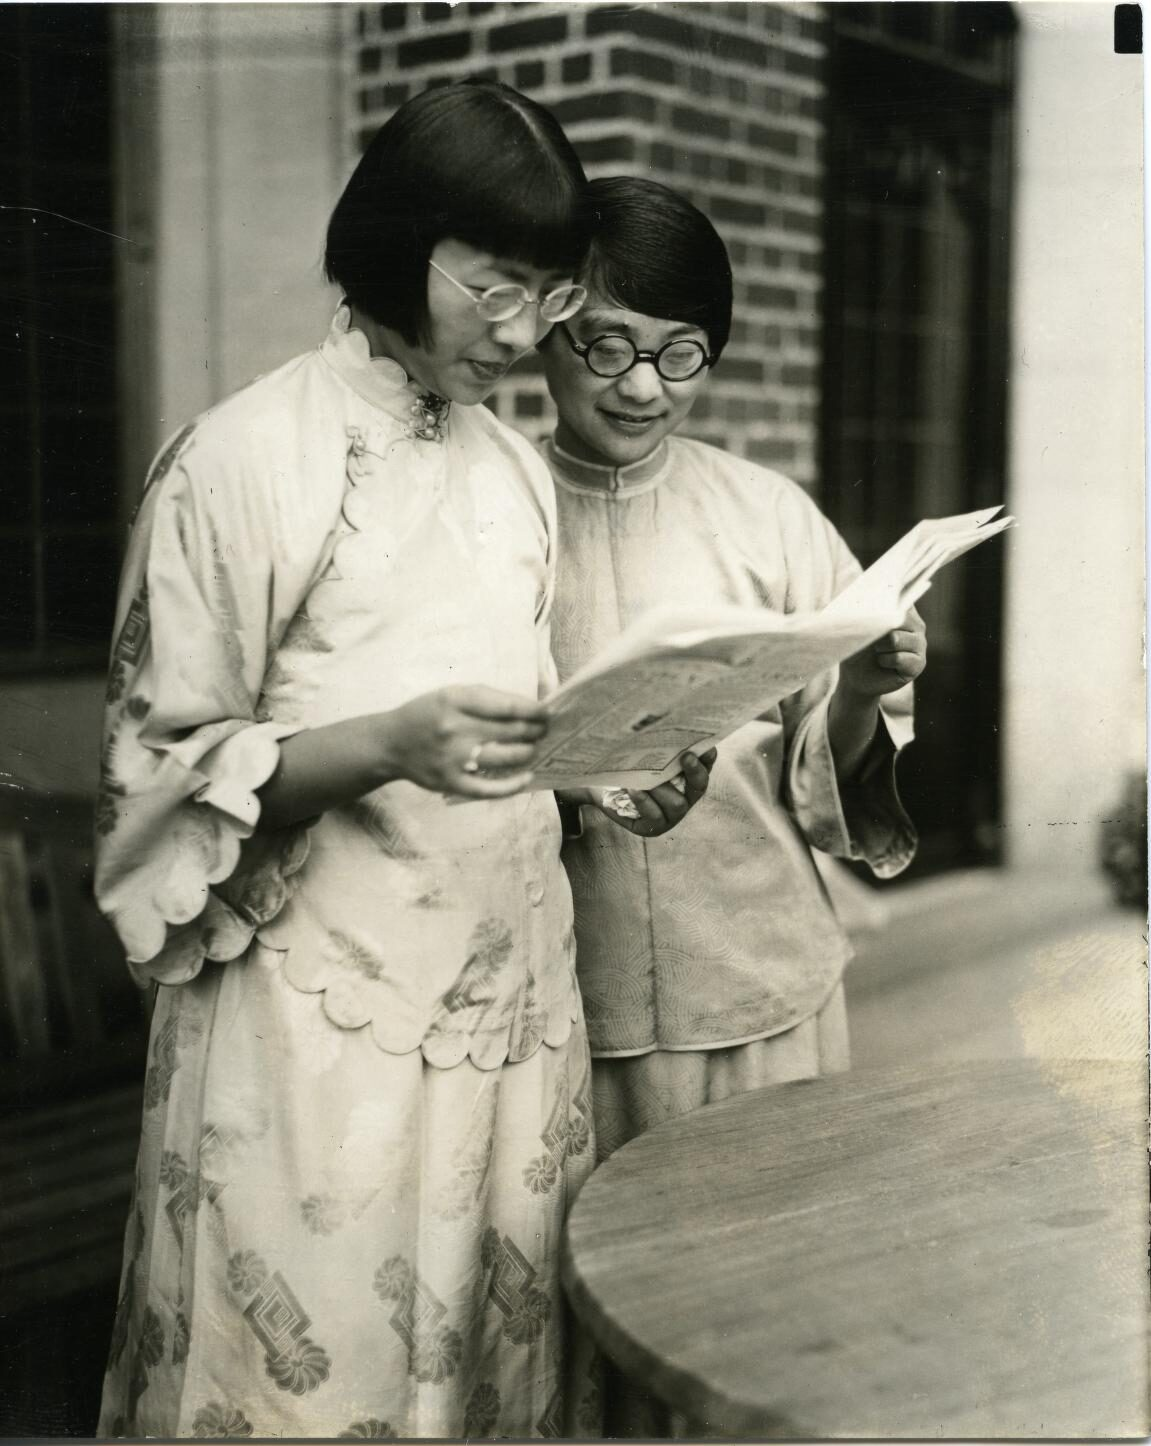 Students Shui Ching & Ao Dju reading a book on patio.